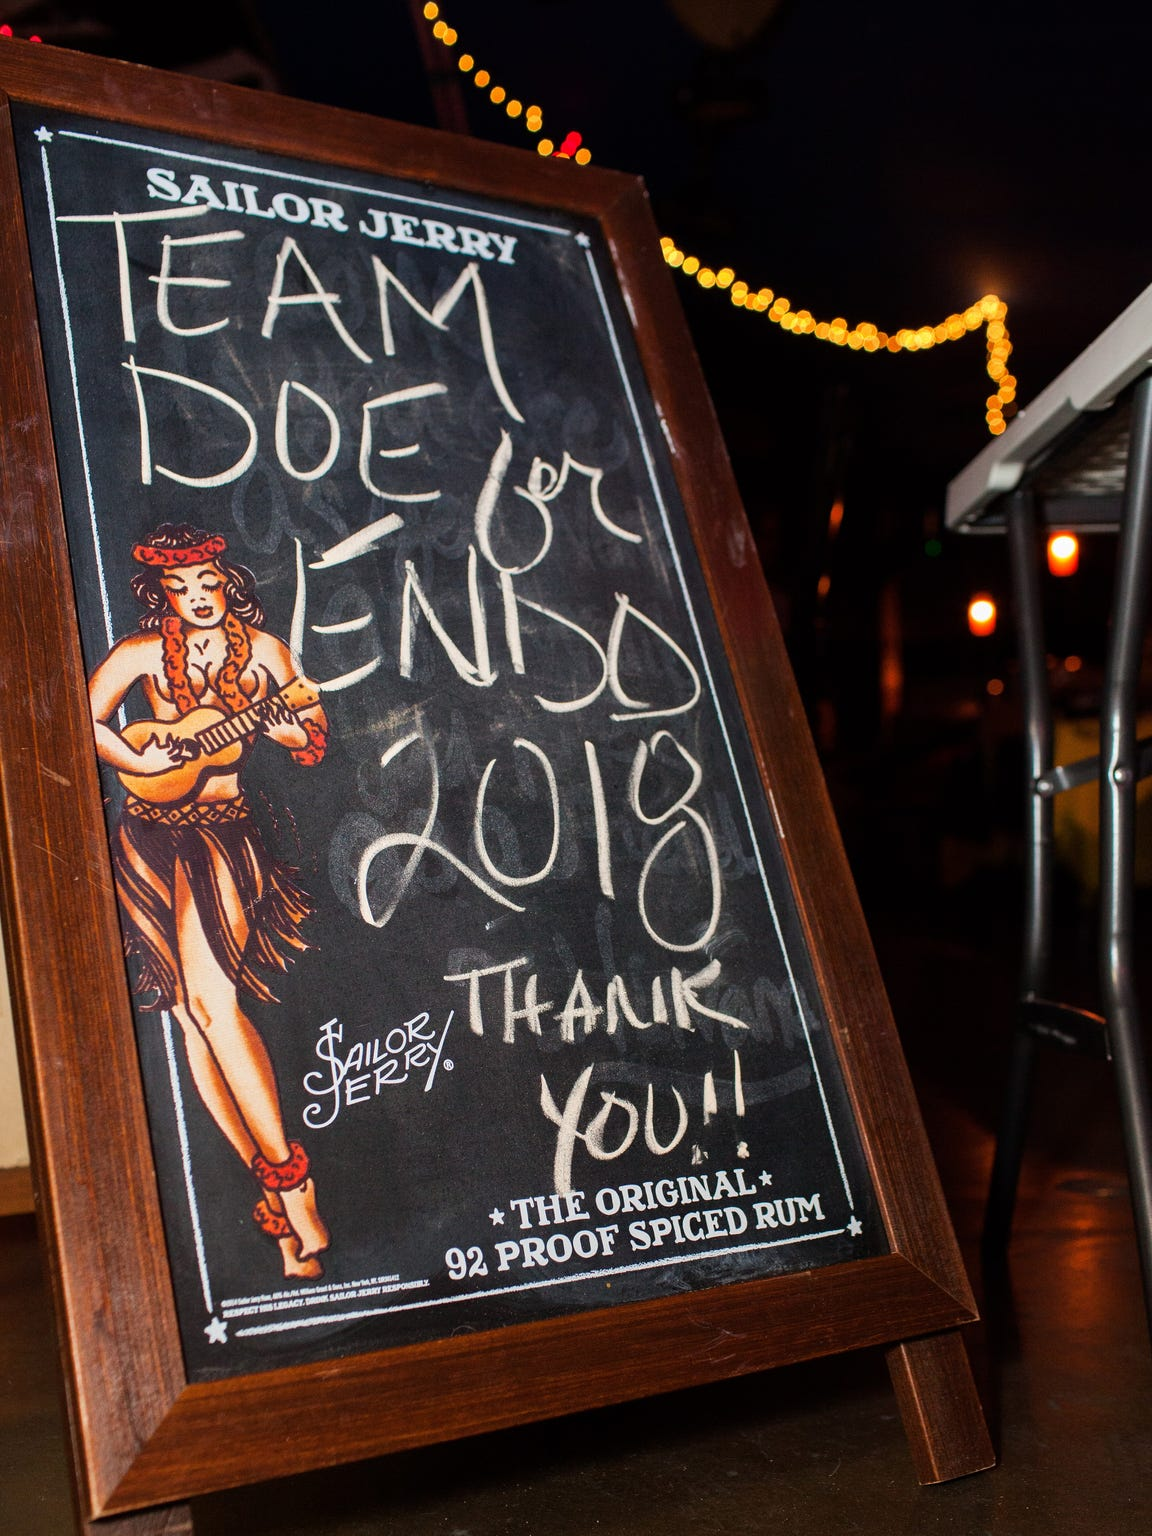 Party-goers are greeted by the Team Doe for Endo sign